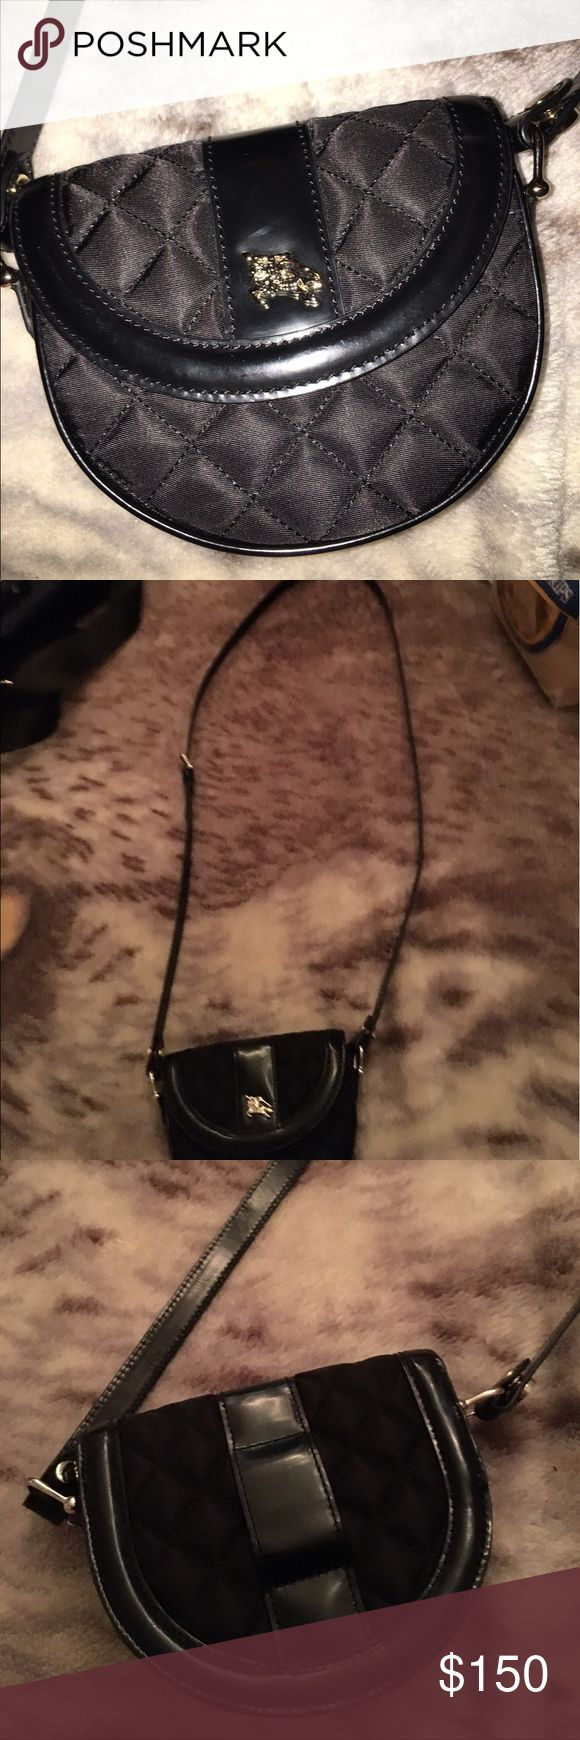 NWOT Burberry Purse Authentic Burberry Purse/ coin purse. Never used, fantastic condition. Black with detachable straps. NWOT Burberry Bags